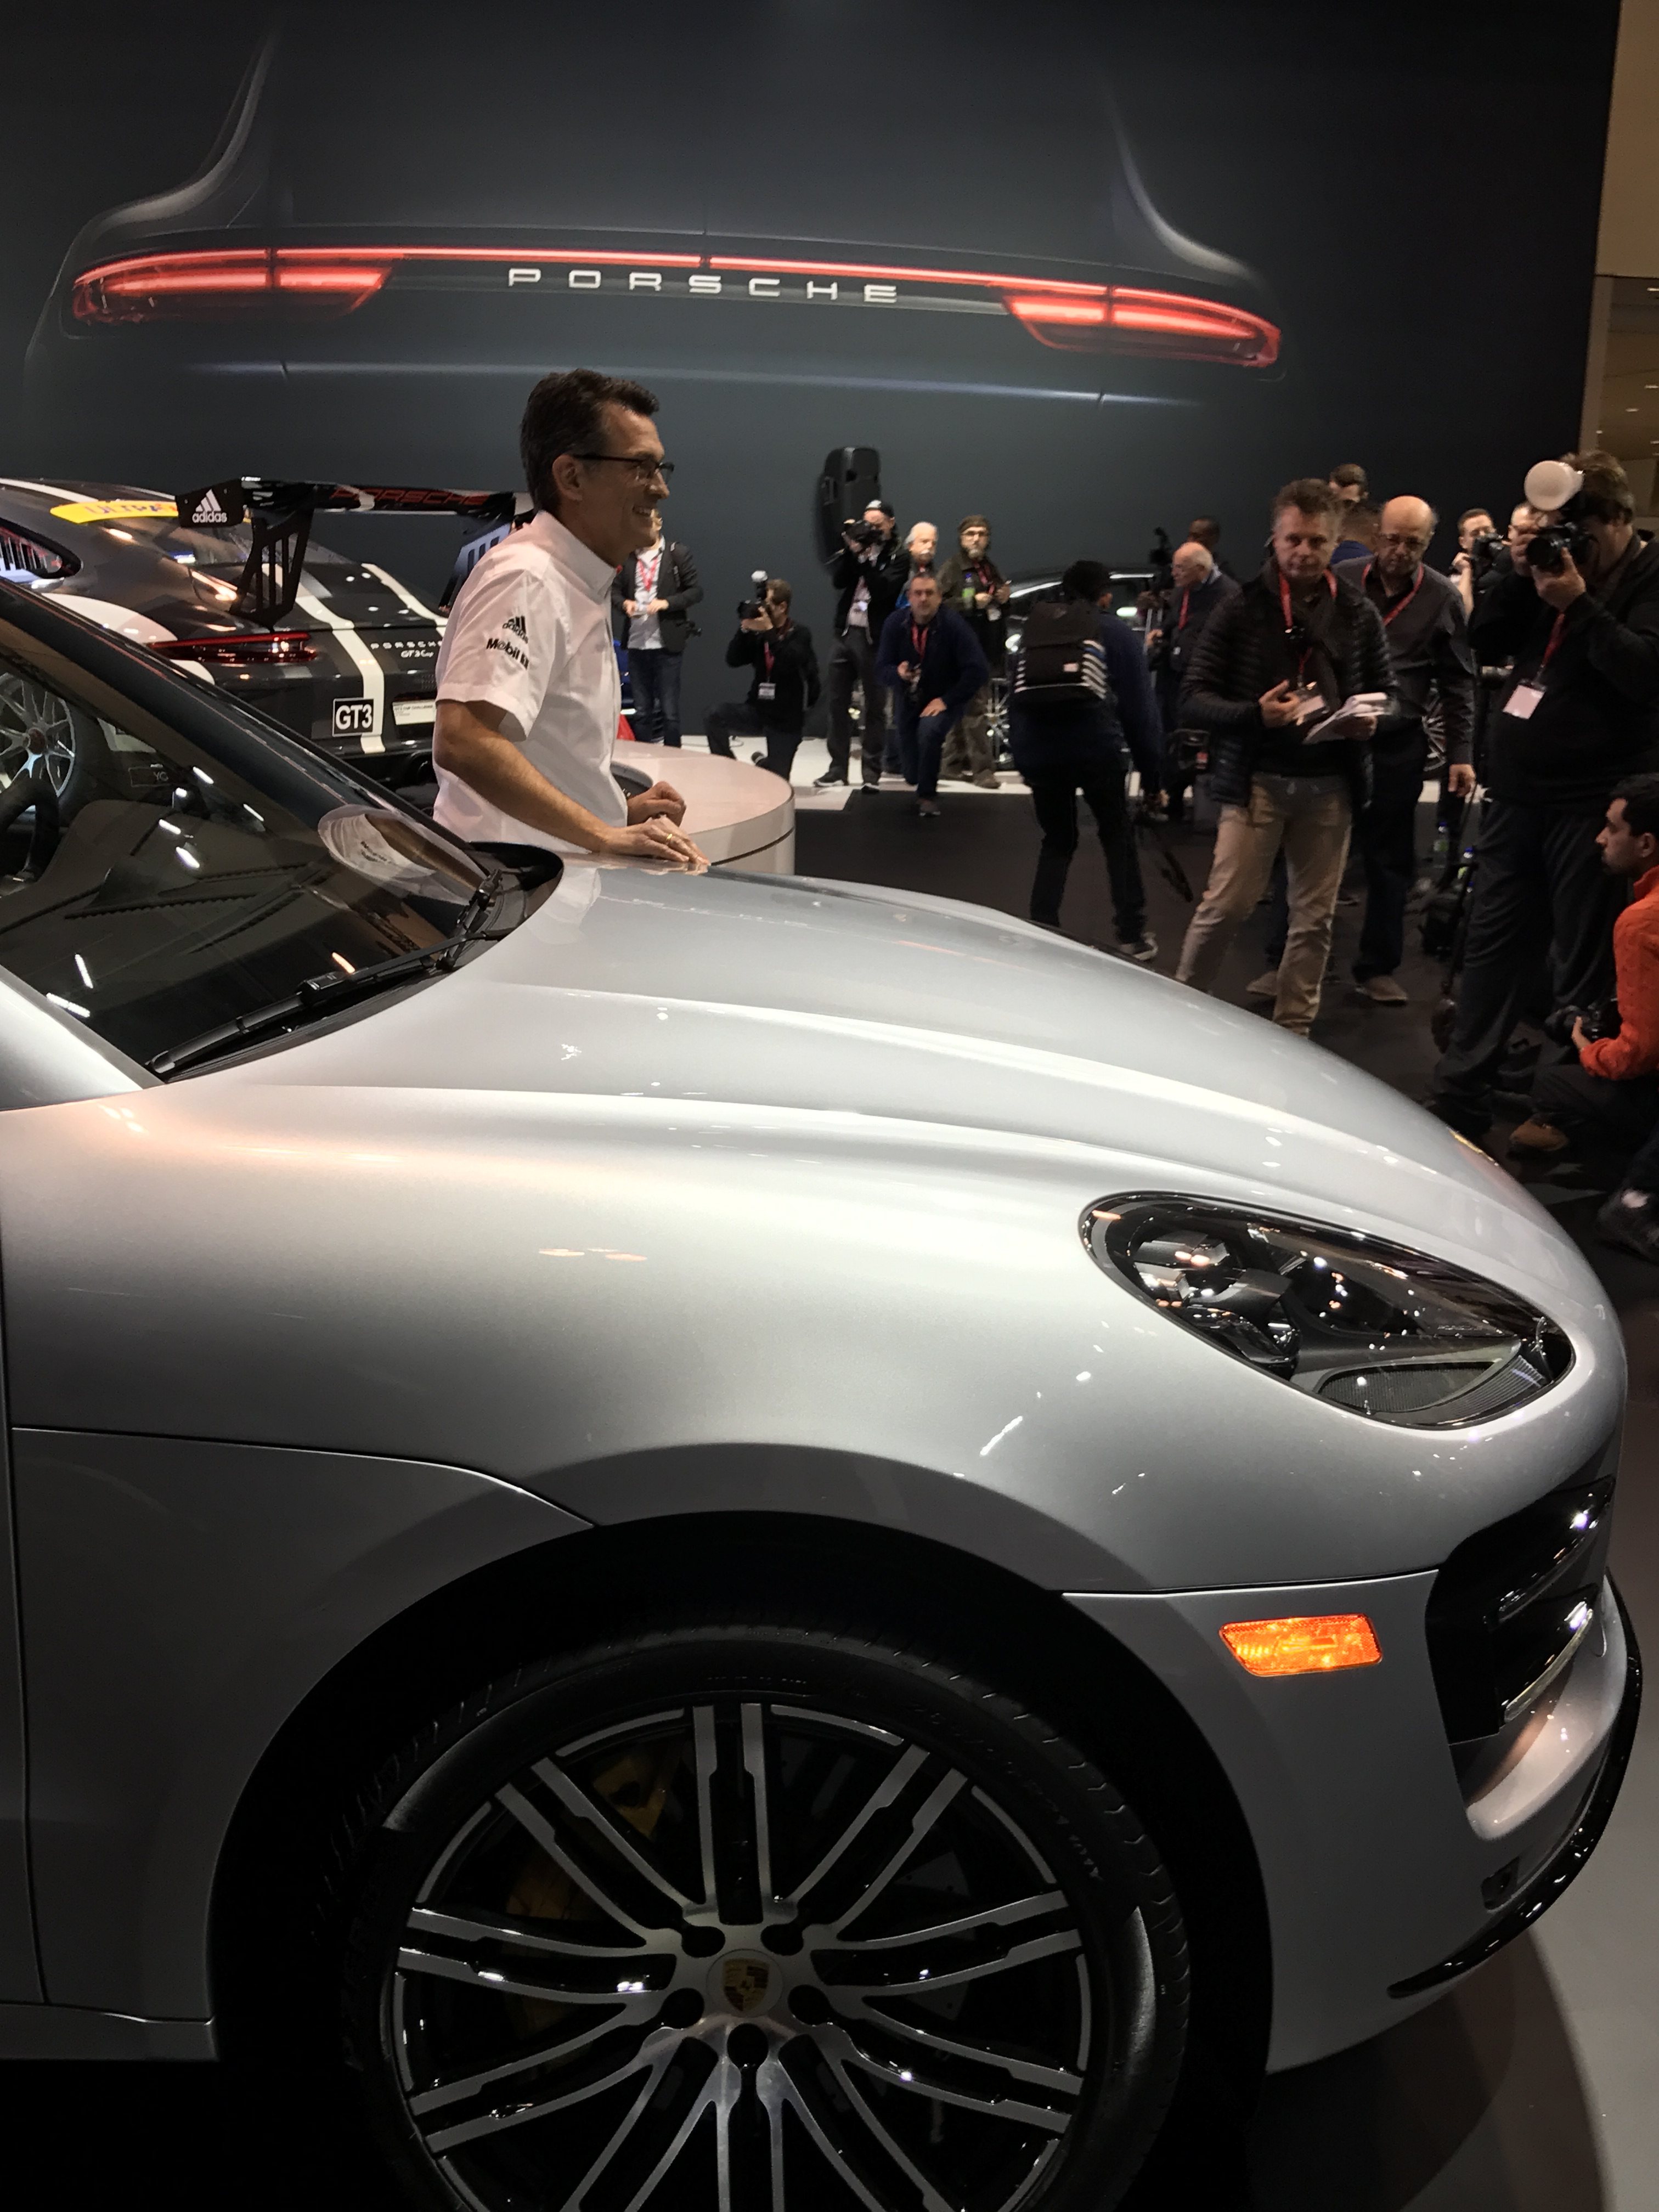 Porsche - Canadian International Autoshow #CIAS2017